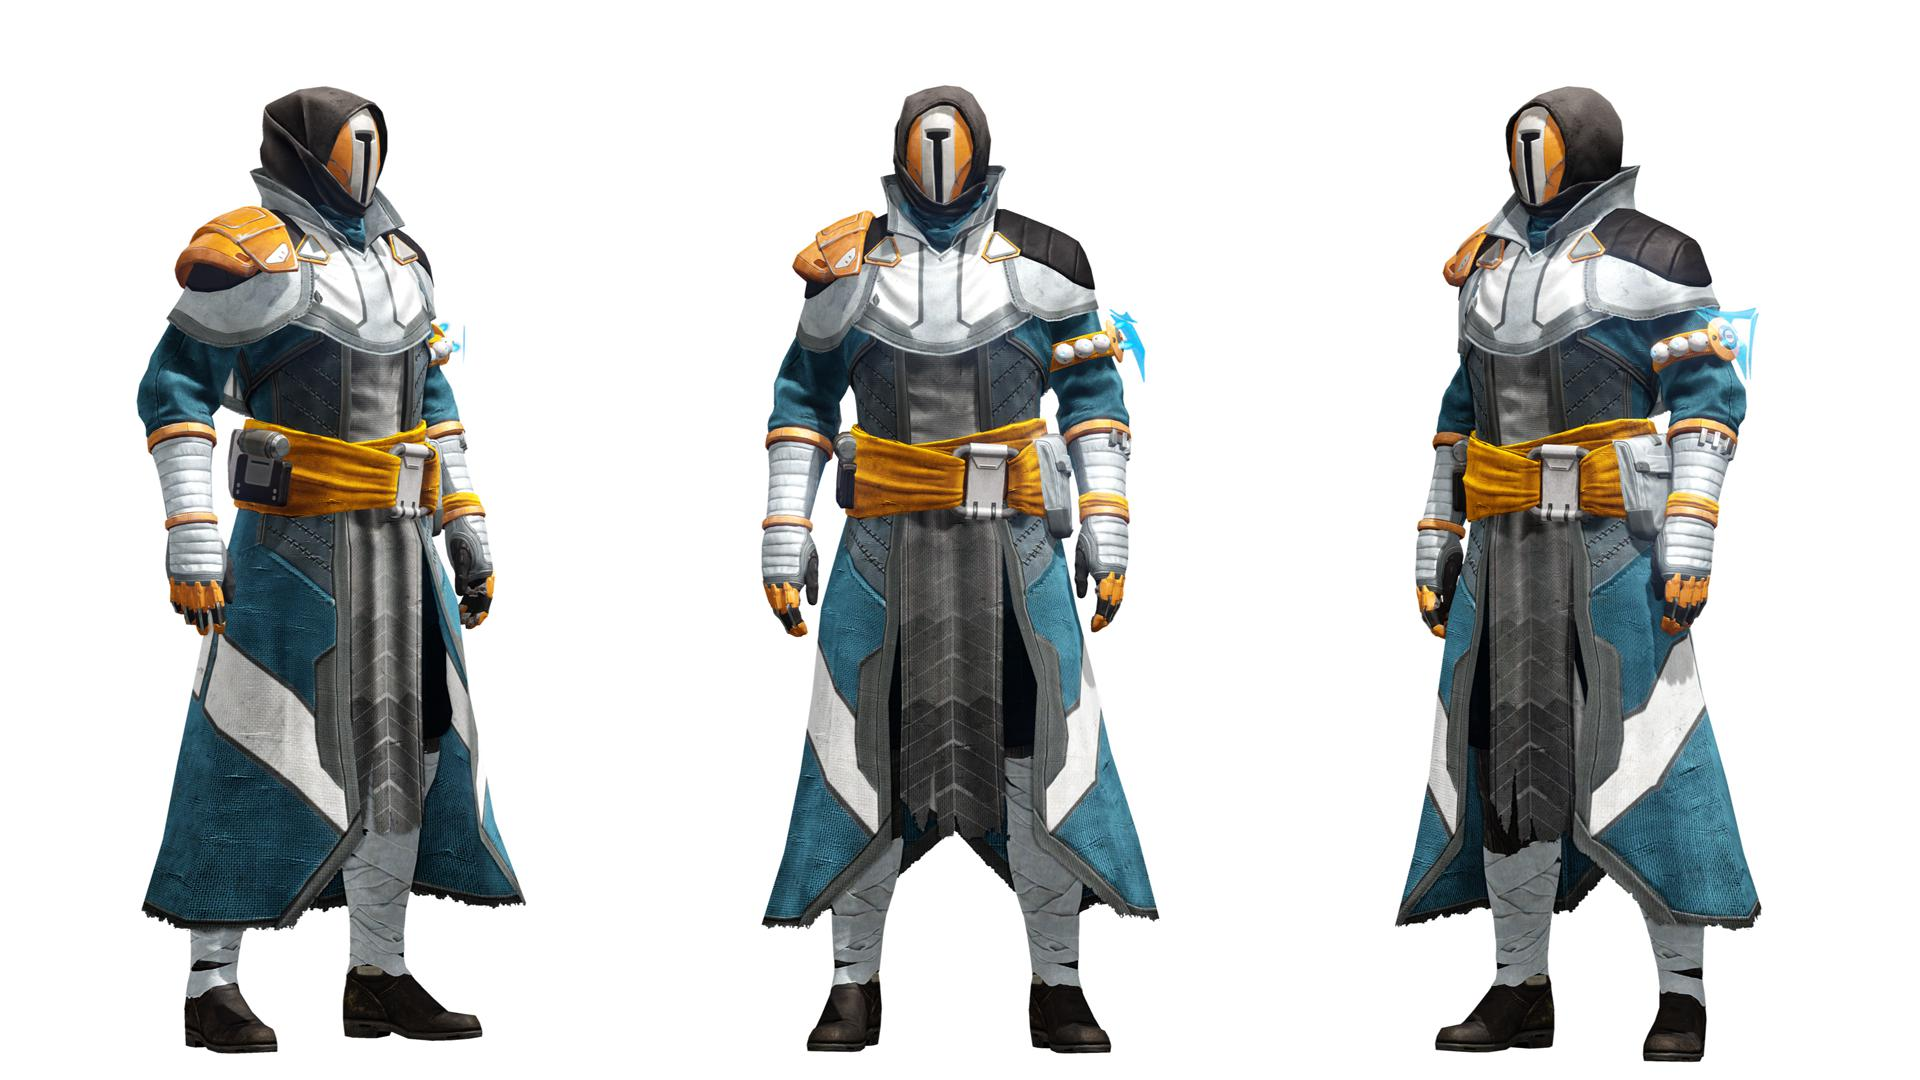 From left to right hunter armor warlock armor and titan armor